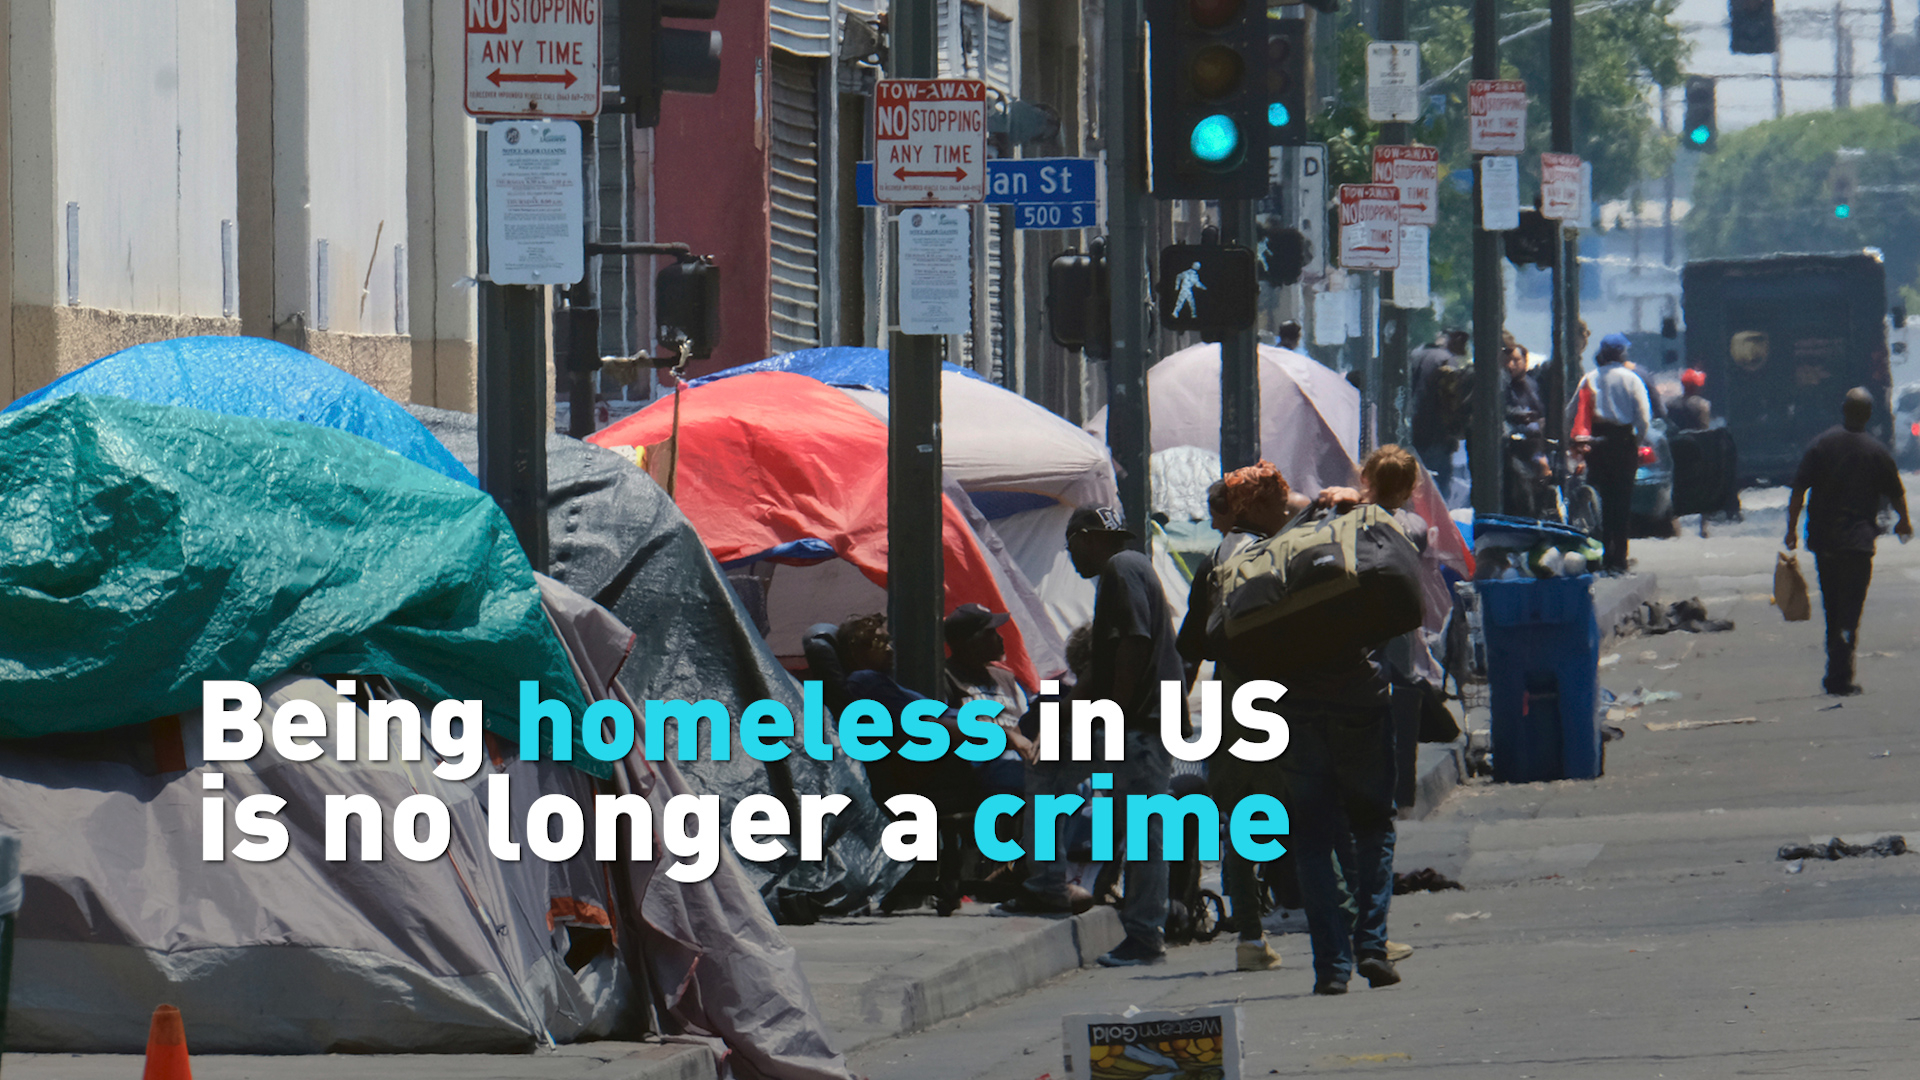 Being homeless in US no longer a crime